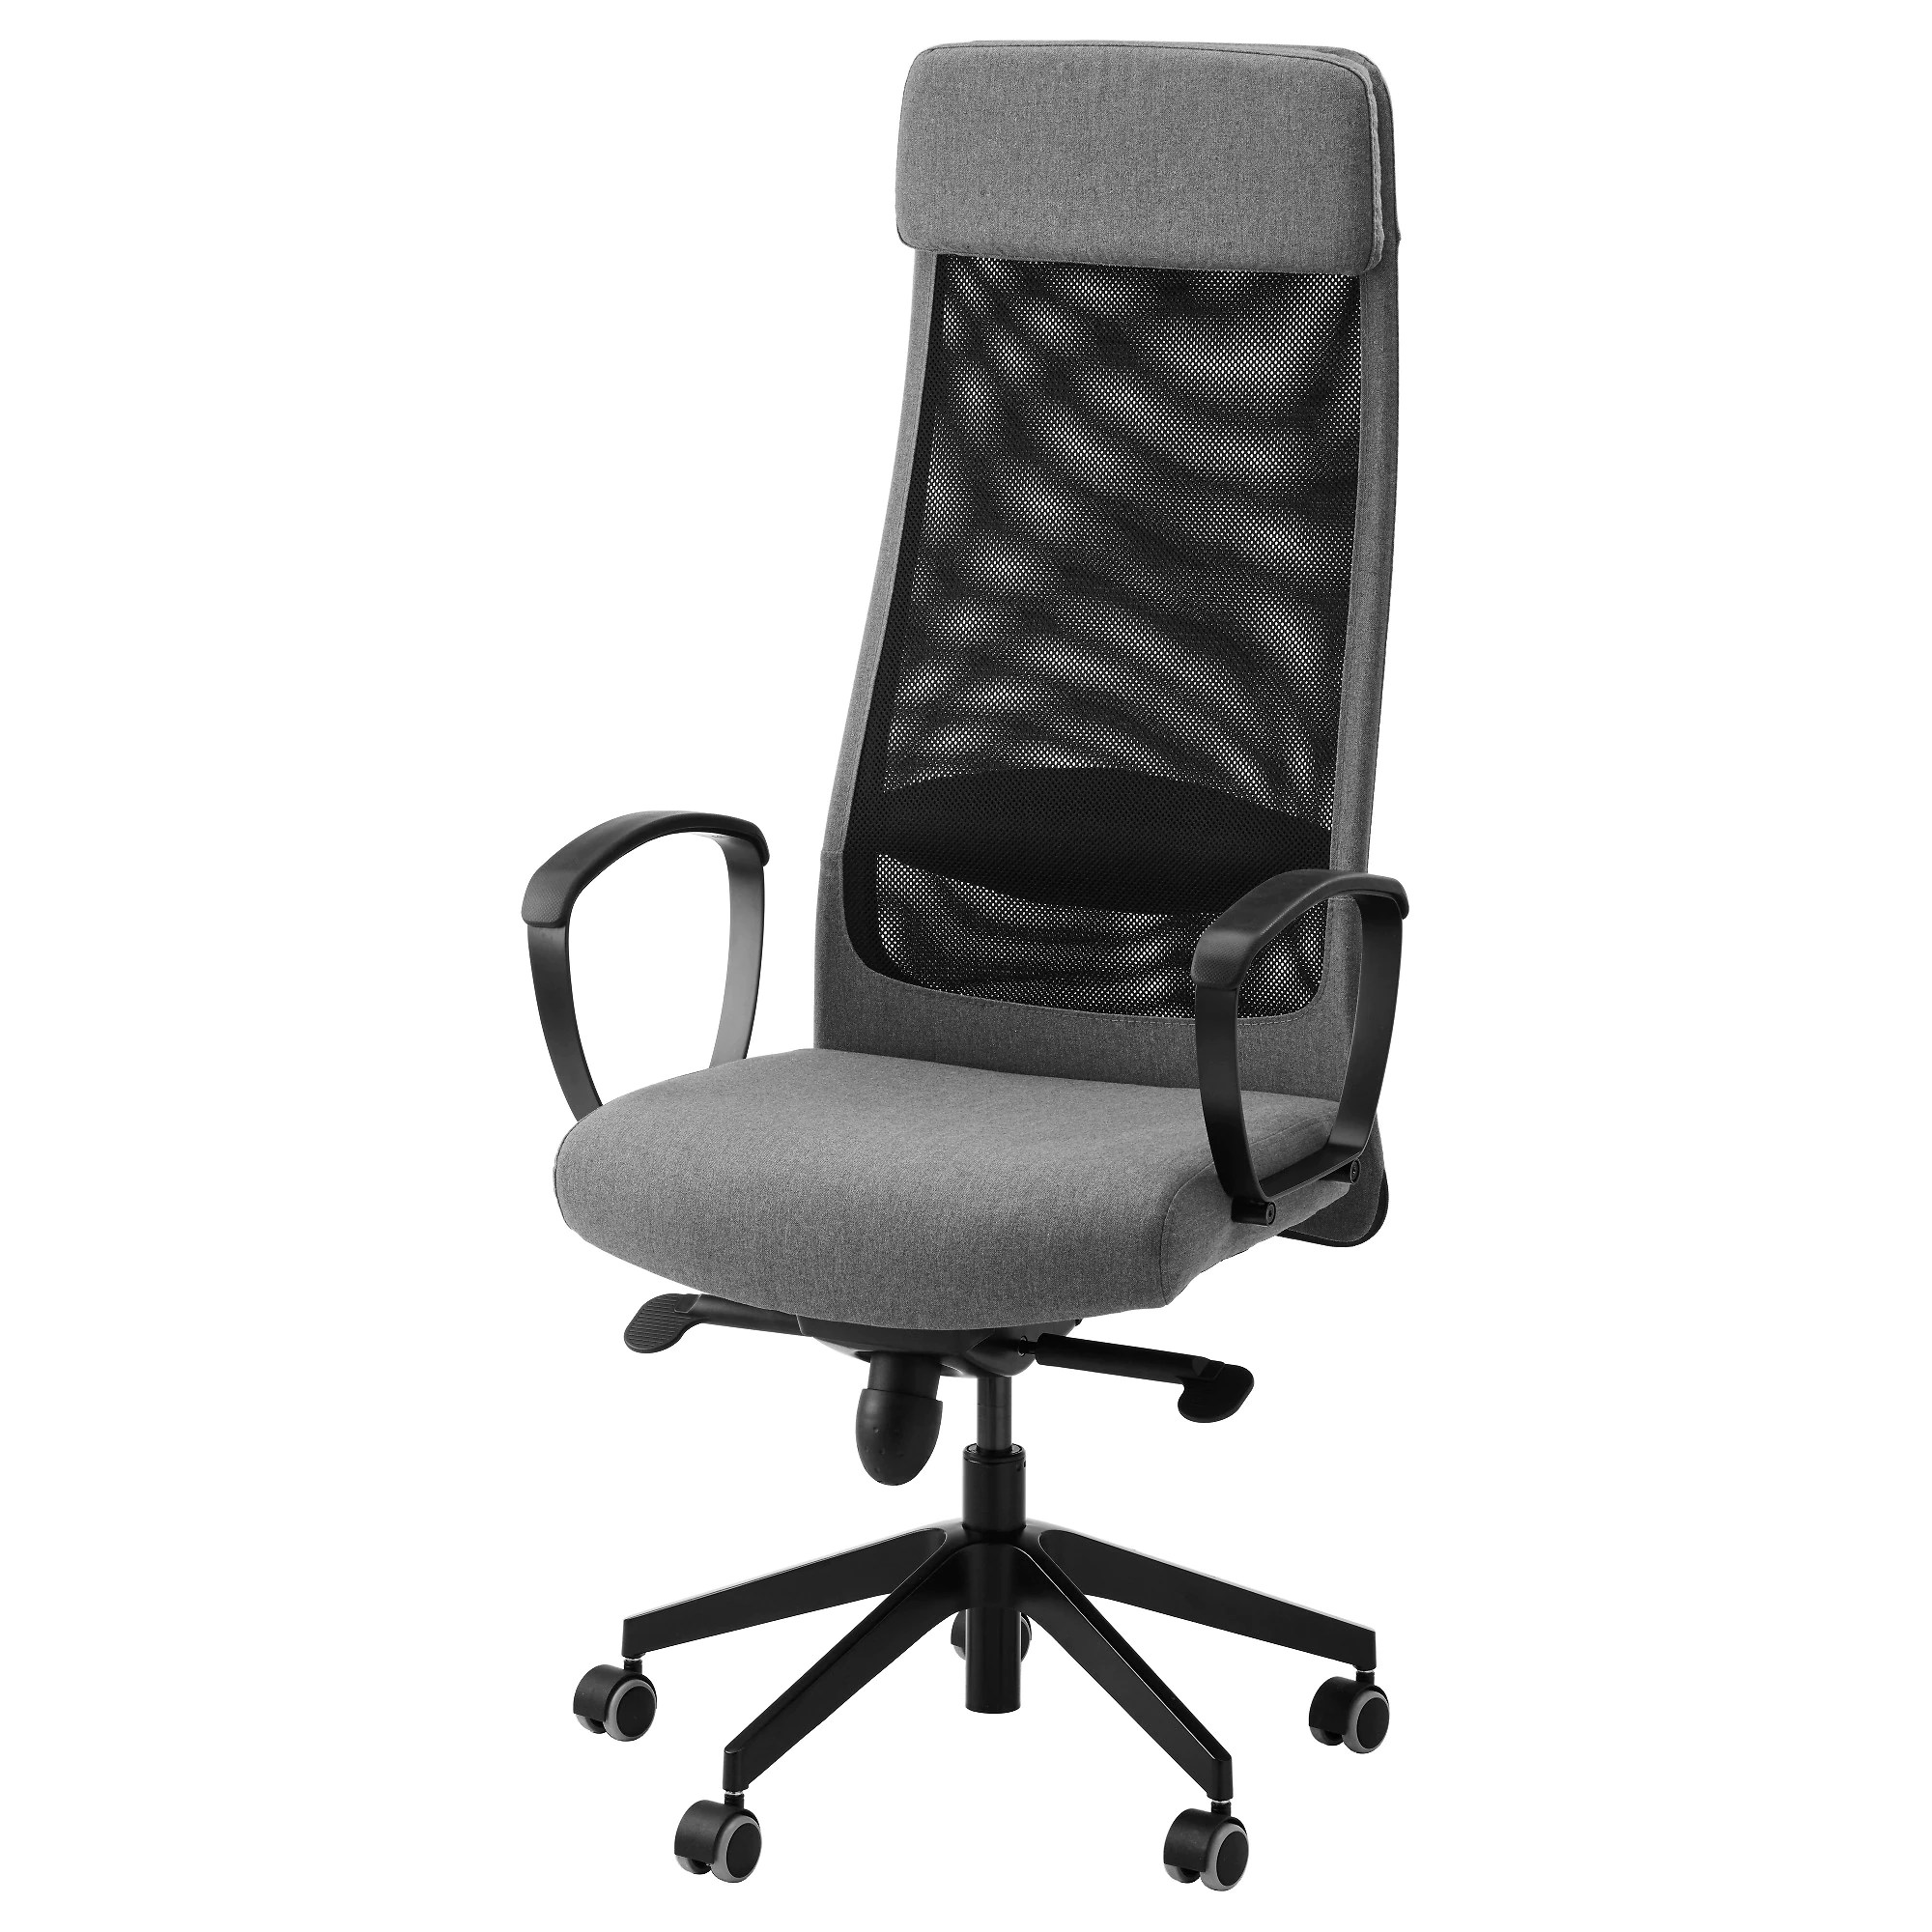 Markus Bureaustoel Ikea Markus Computer Desk Chair Office Chairs Ikea Which Is The